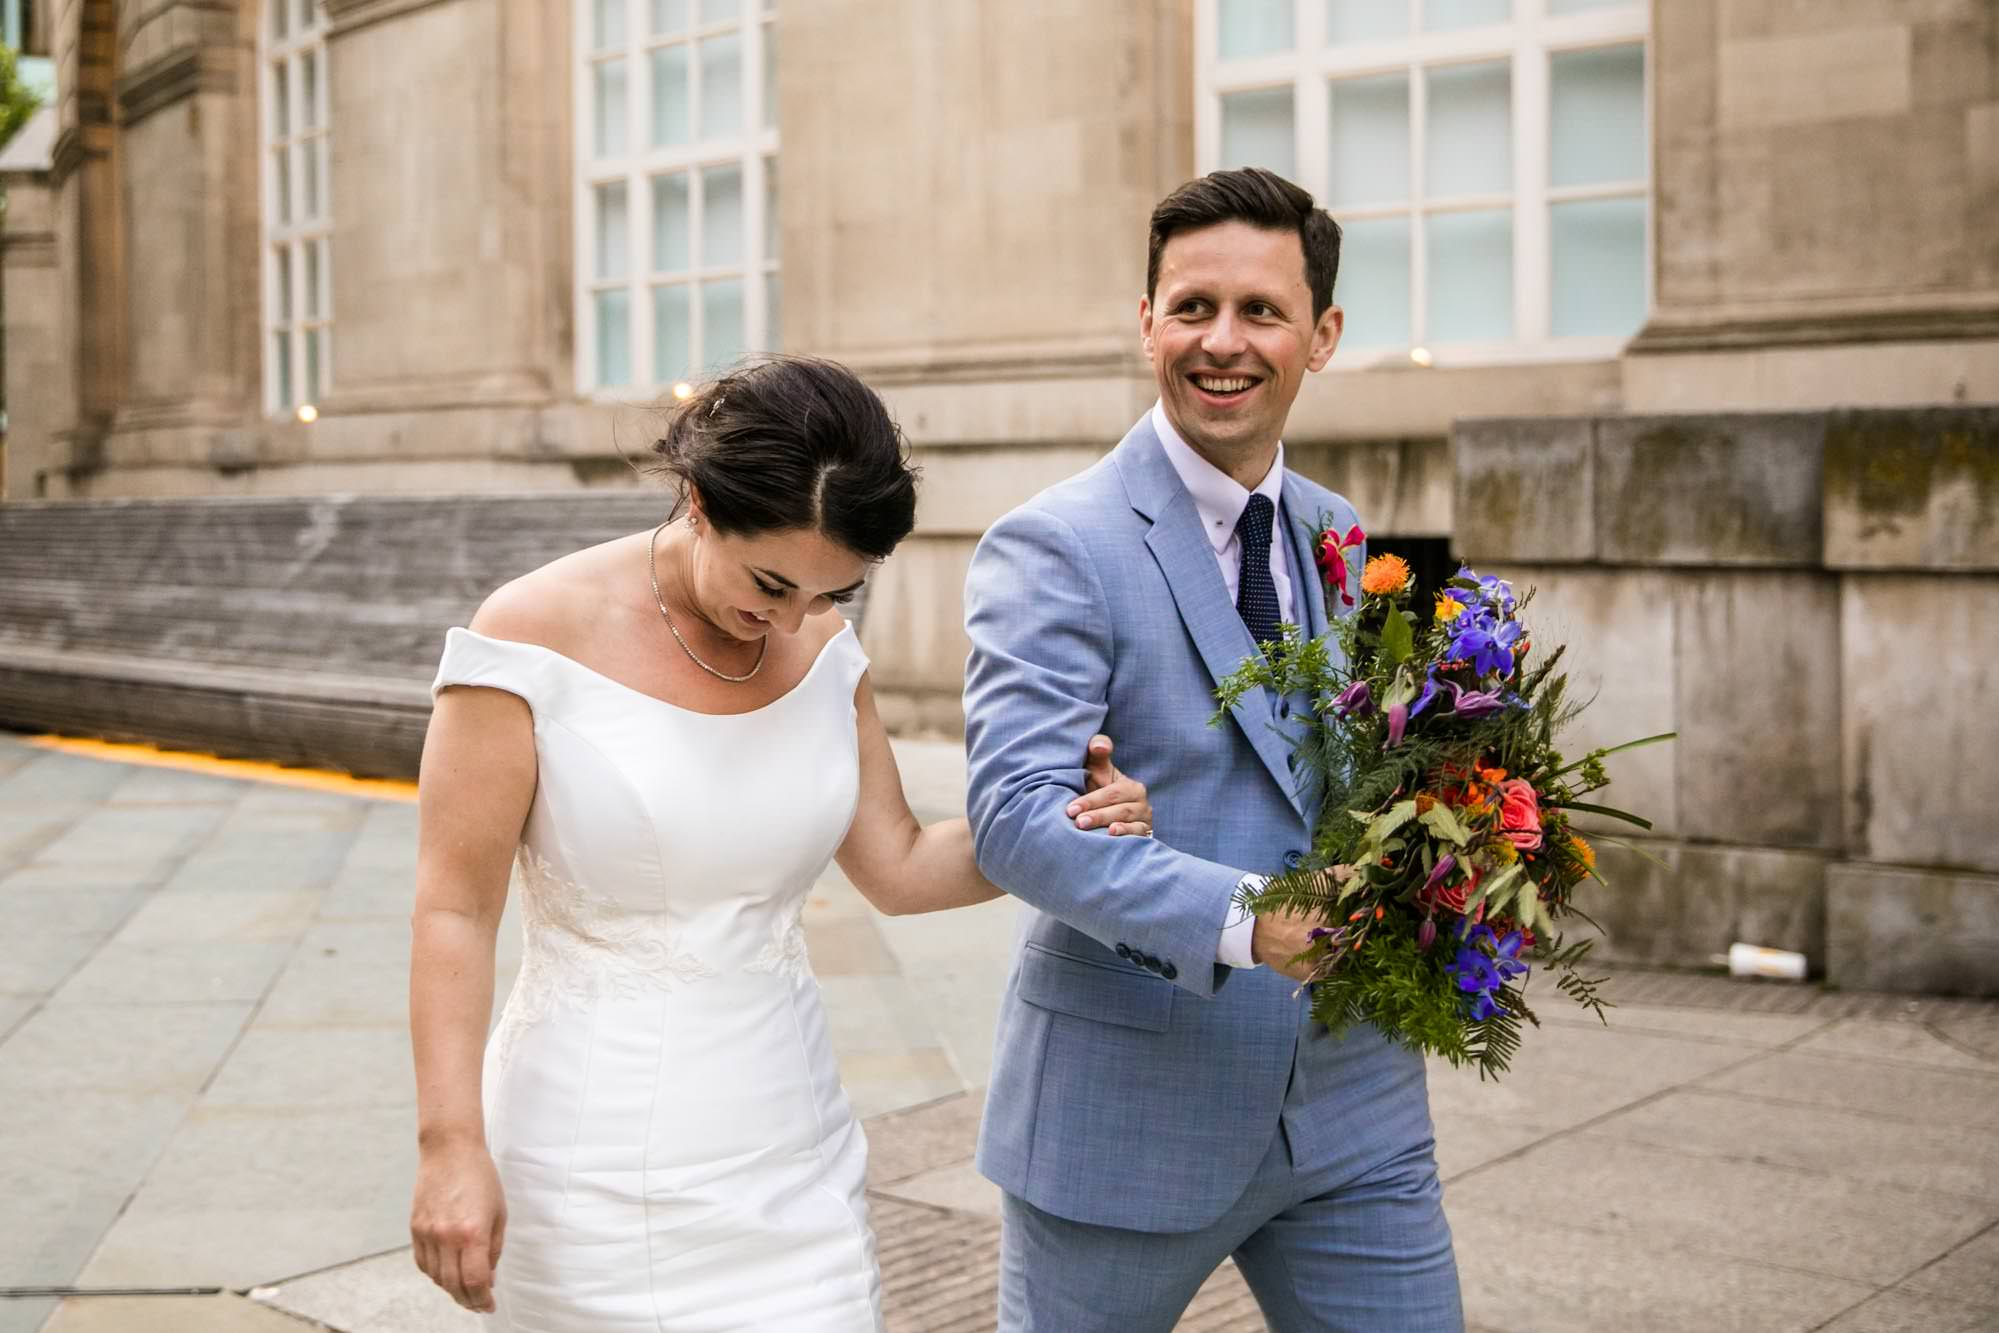 Colourful Wedding Photographs Manchester